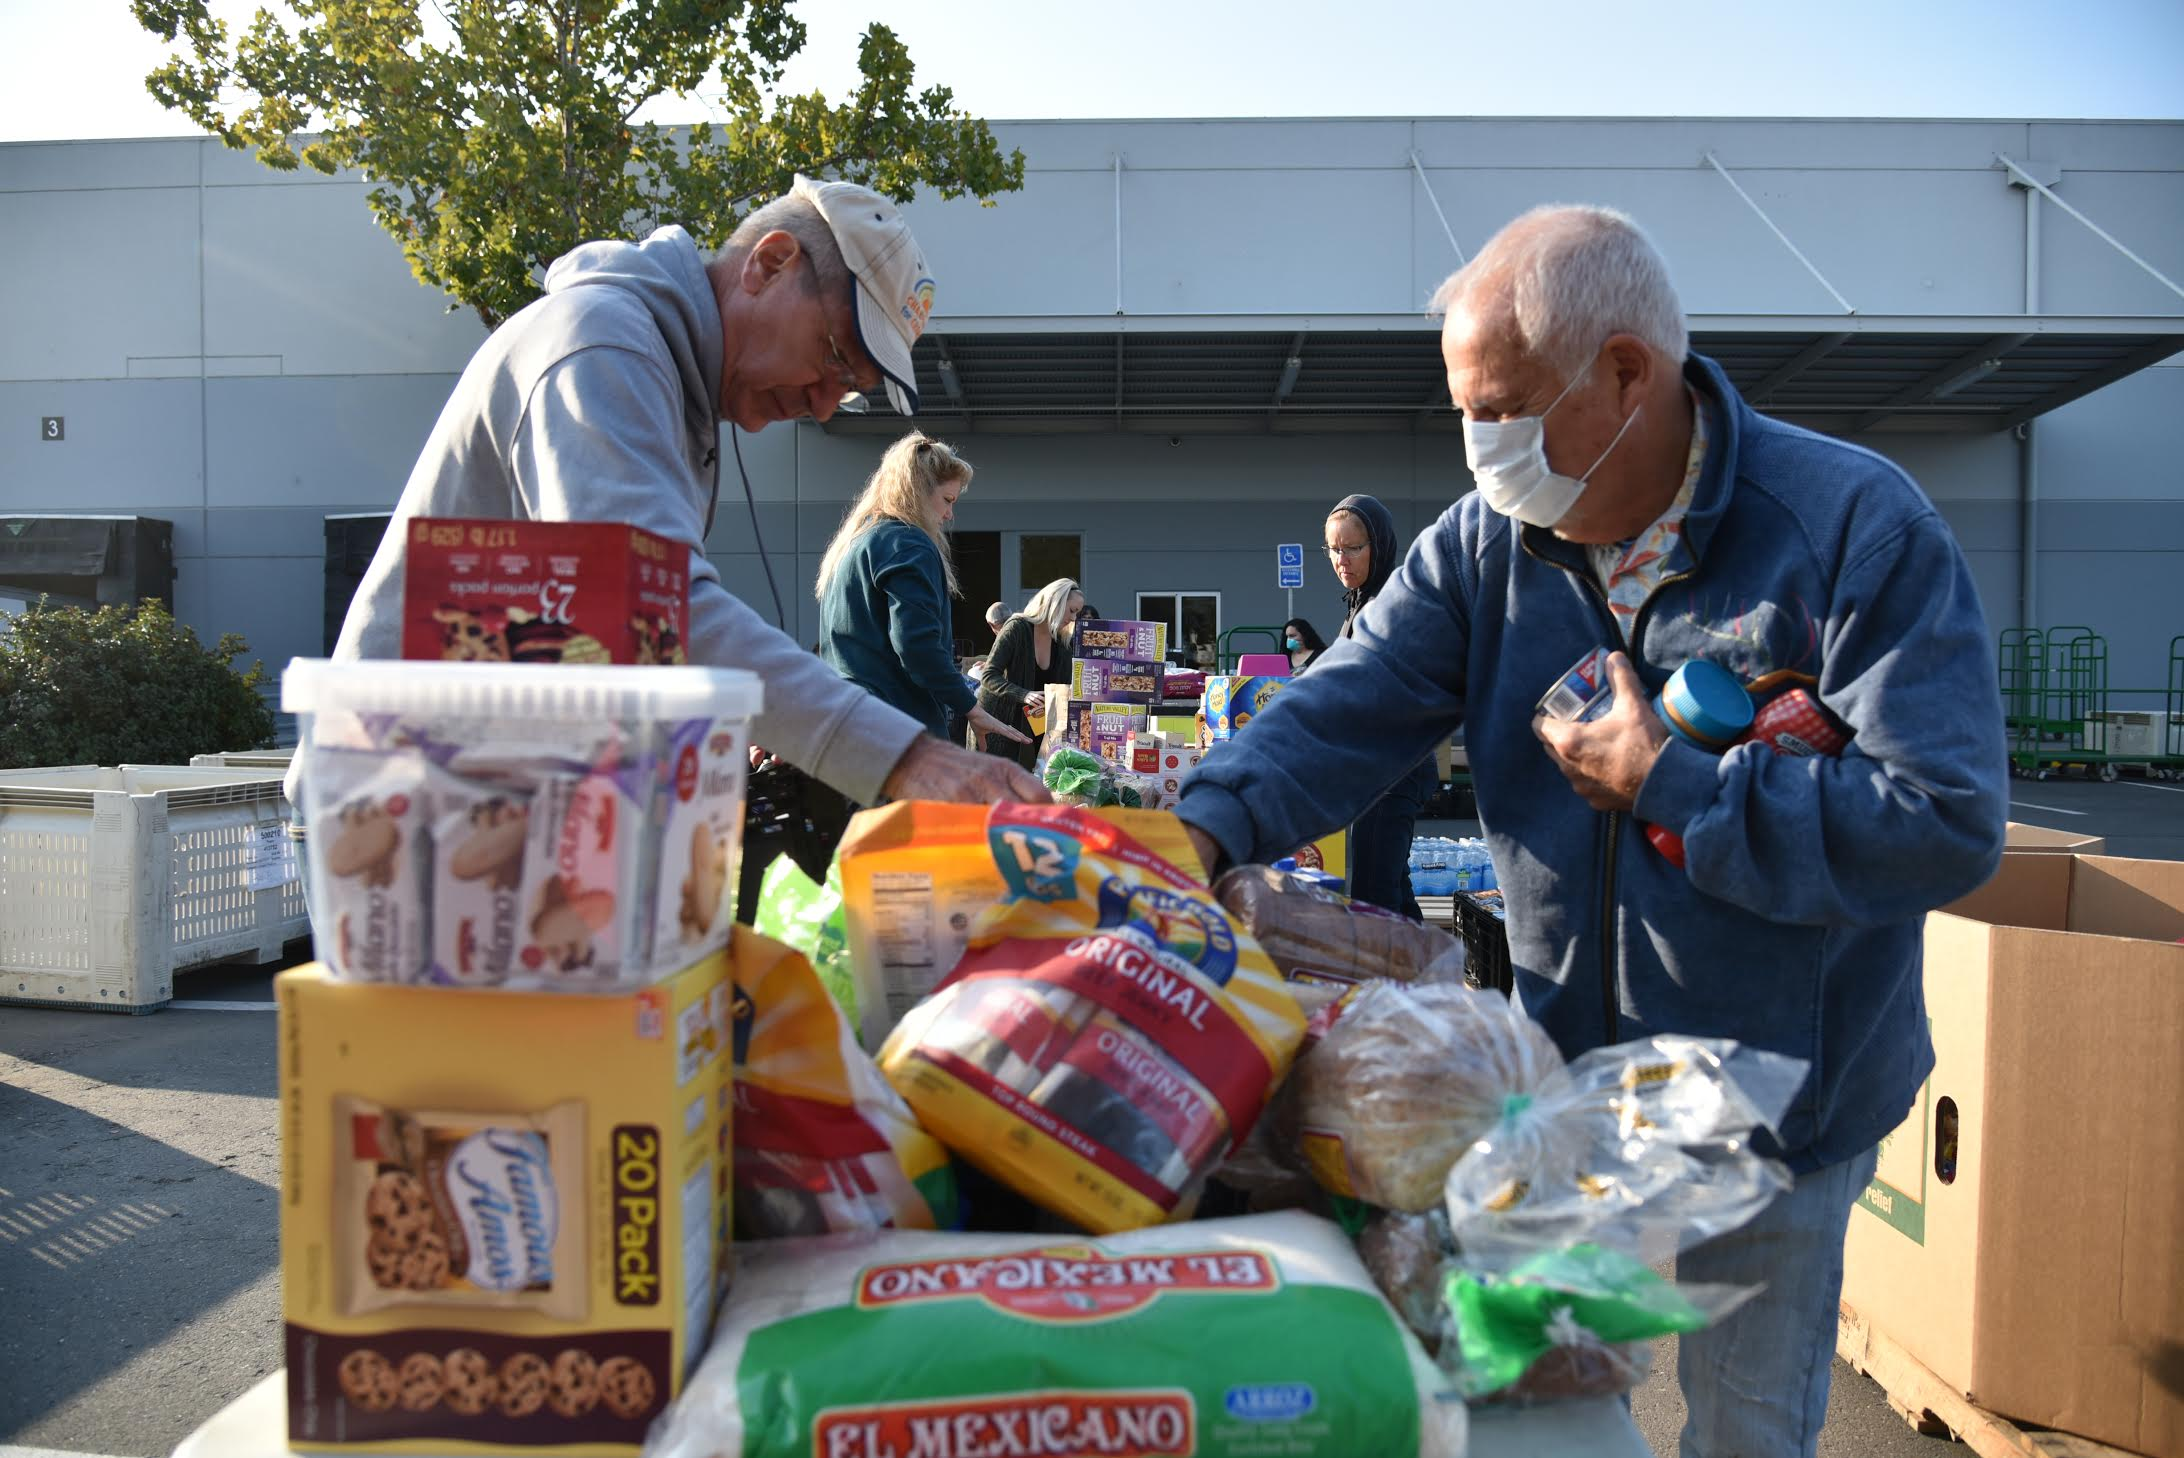 After wildfires, North Bay food bank steps up to address staggering need